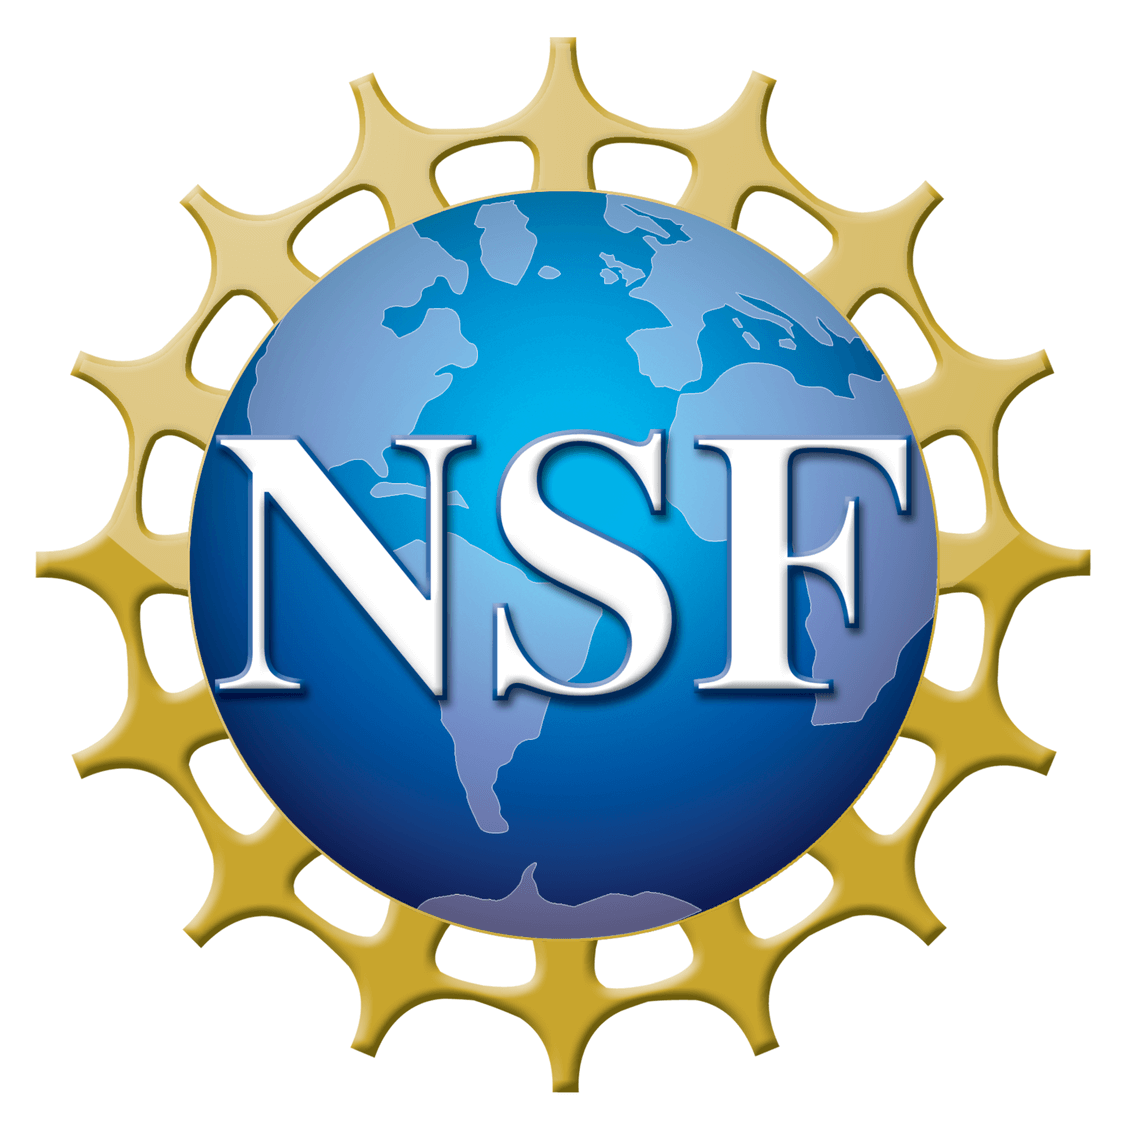 National Science Foundation logo, A blue globe of the earth with small golden figures standing on the edges of the globe. All the figures are connected with thin gold arms. Superimposed on the globe in white letters is NSF